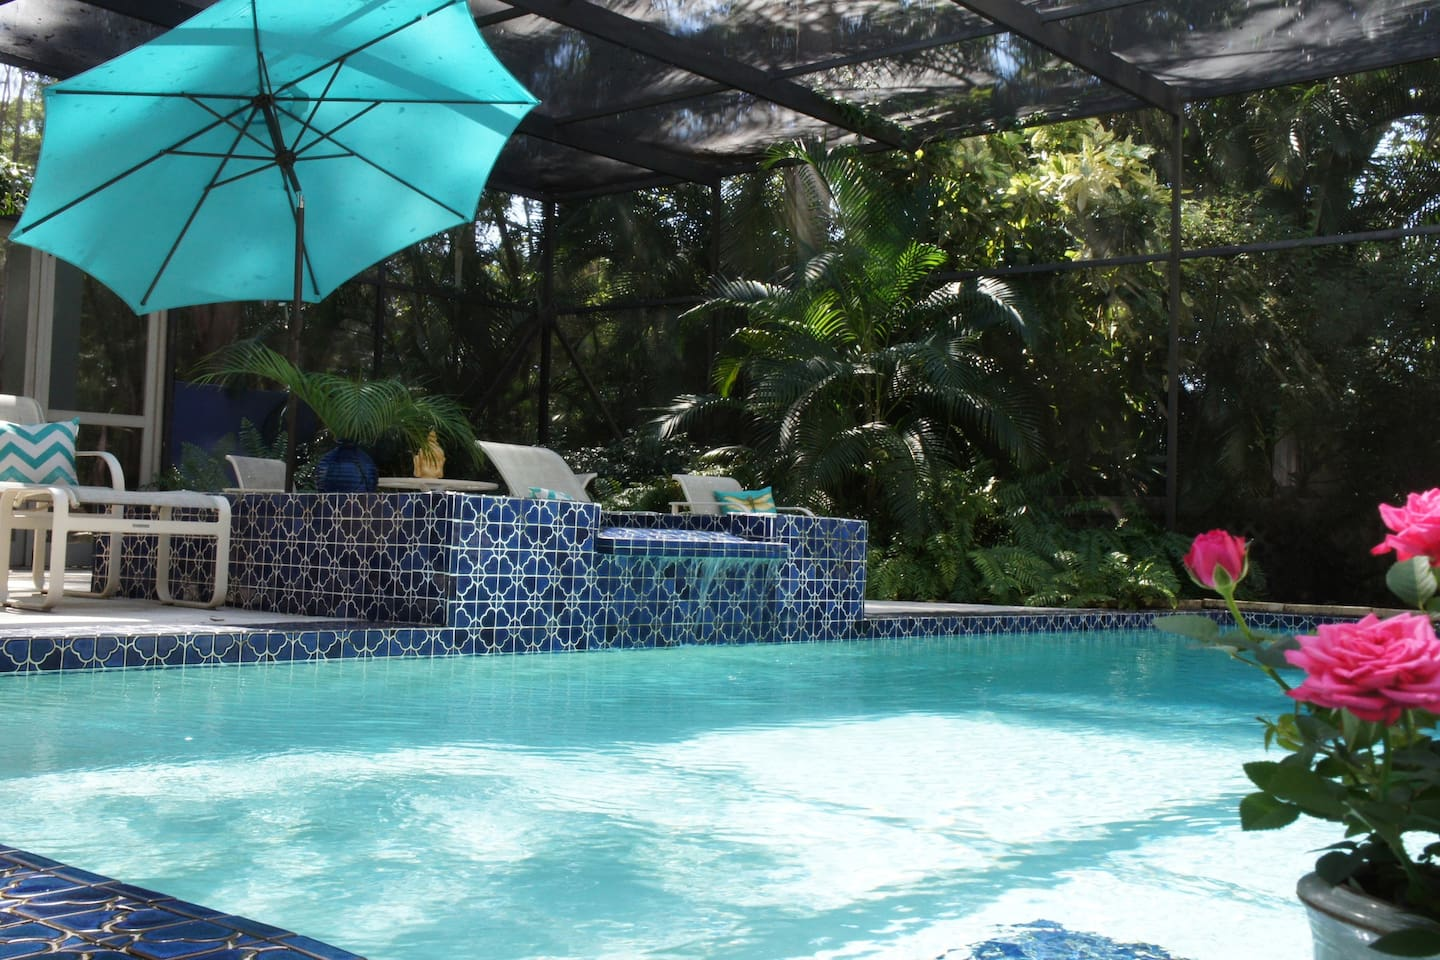 Pool and lounge area, relax to the tranquil sound of the waterfall from the plunge pool